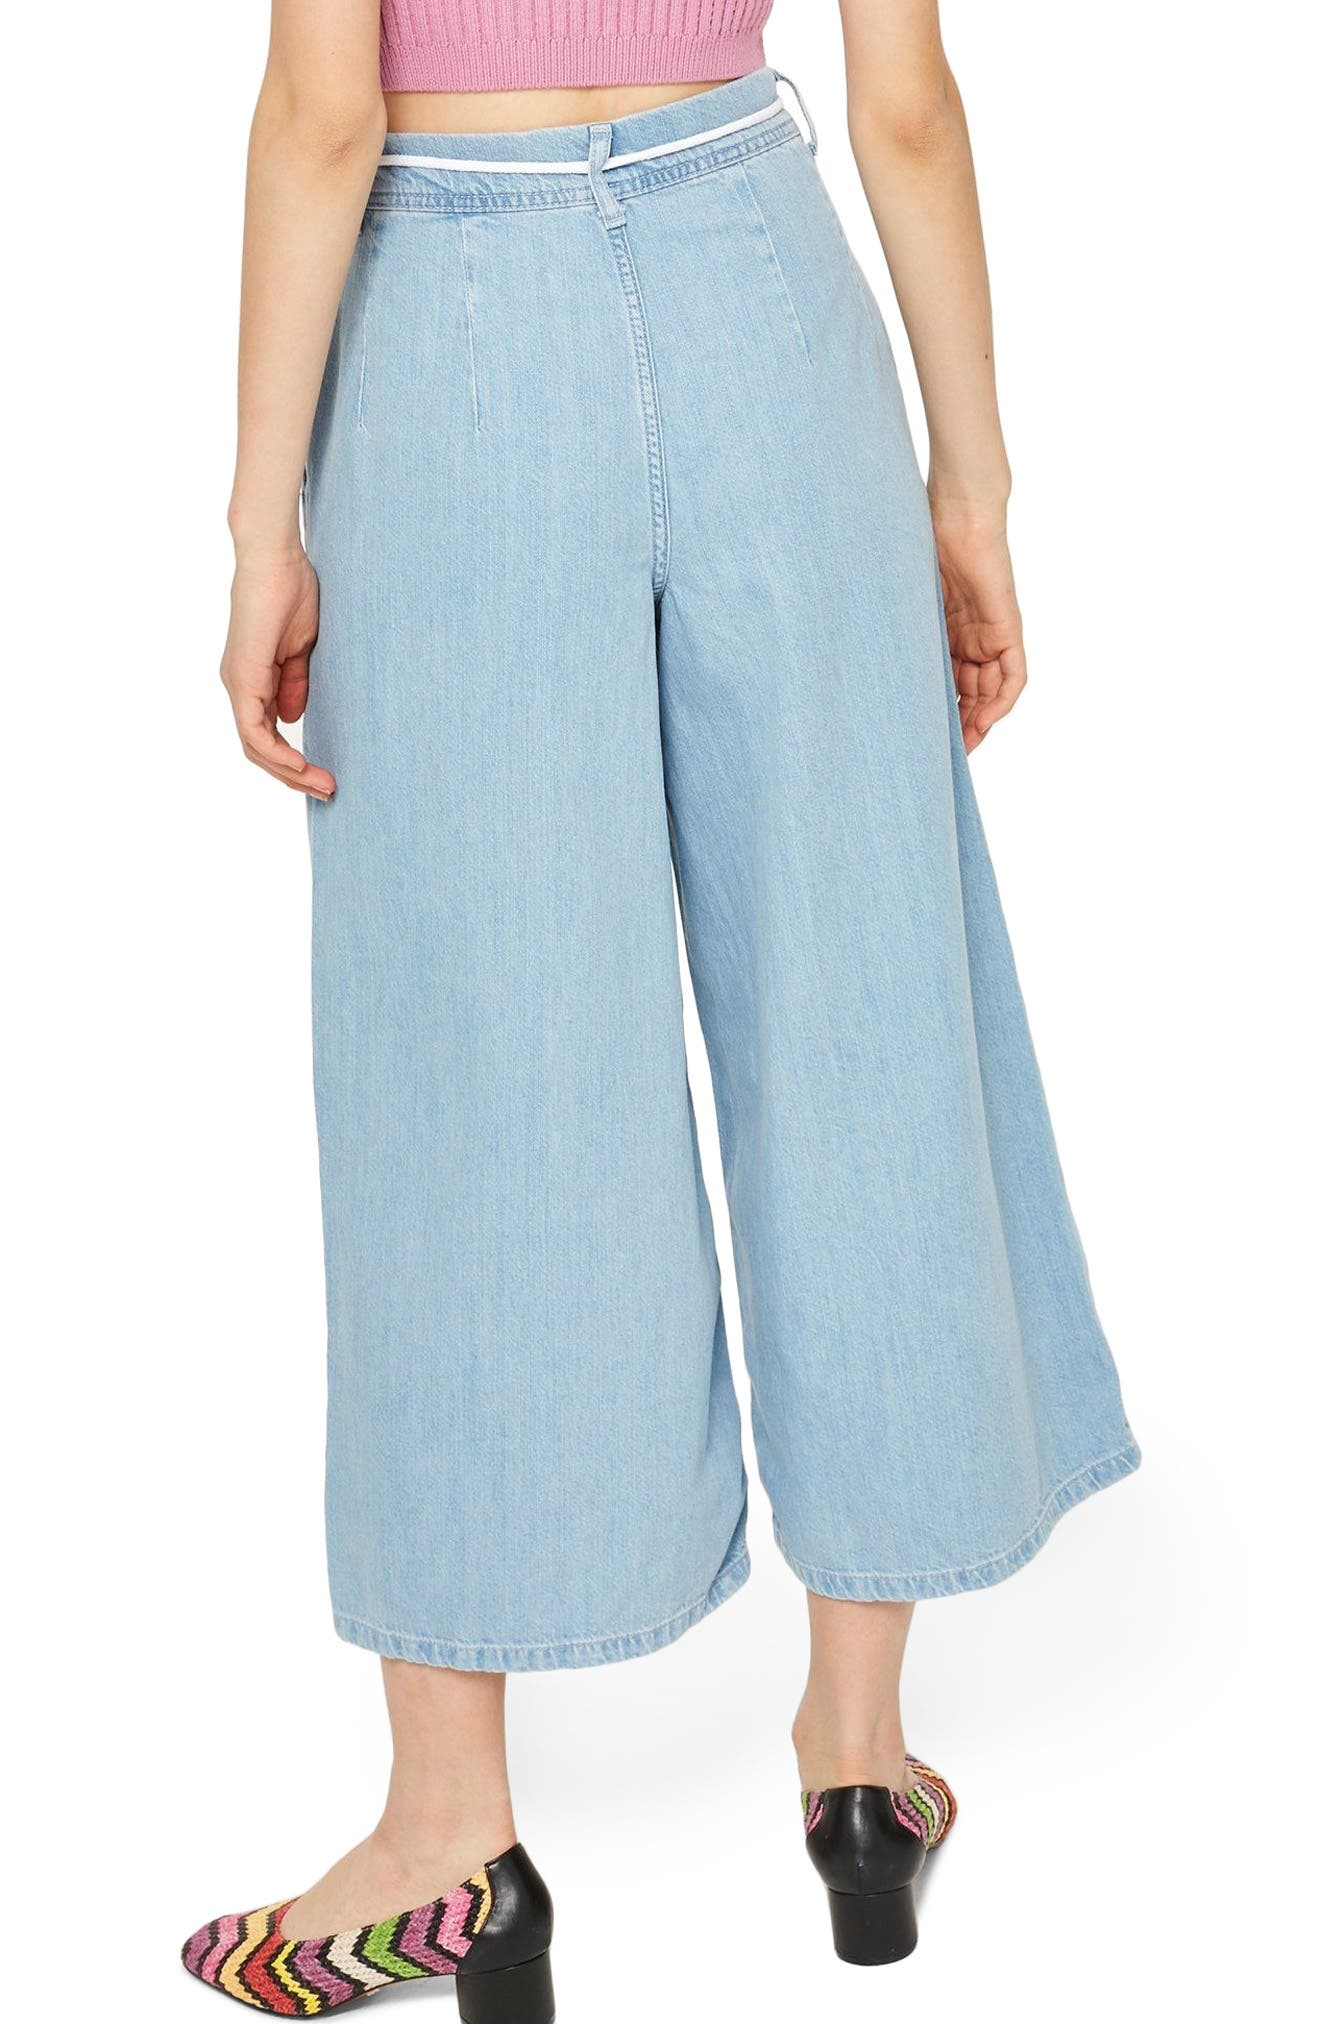 MOTO Pleat Tie Crop Wide-Leg Jeans,                             Alternate thumbnail 2, color,                             Light Bleach Denim